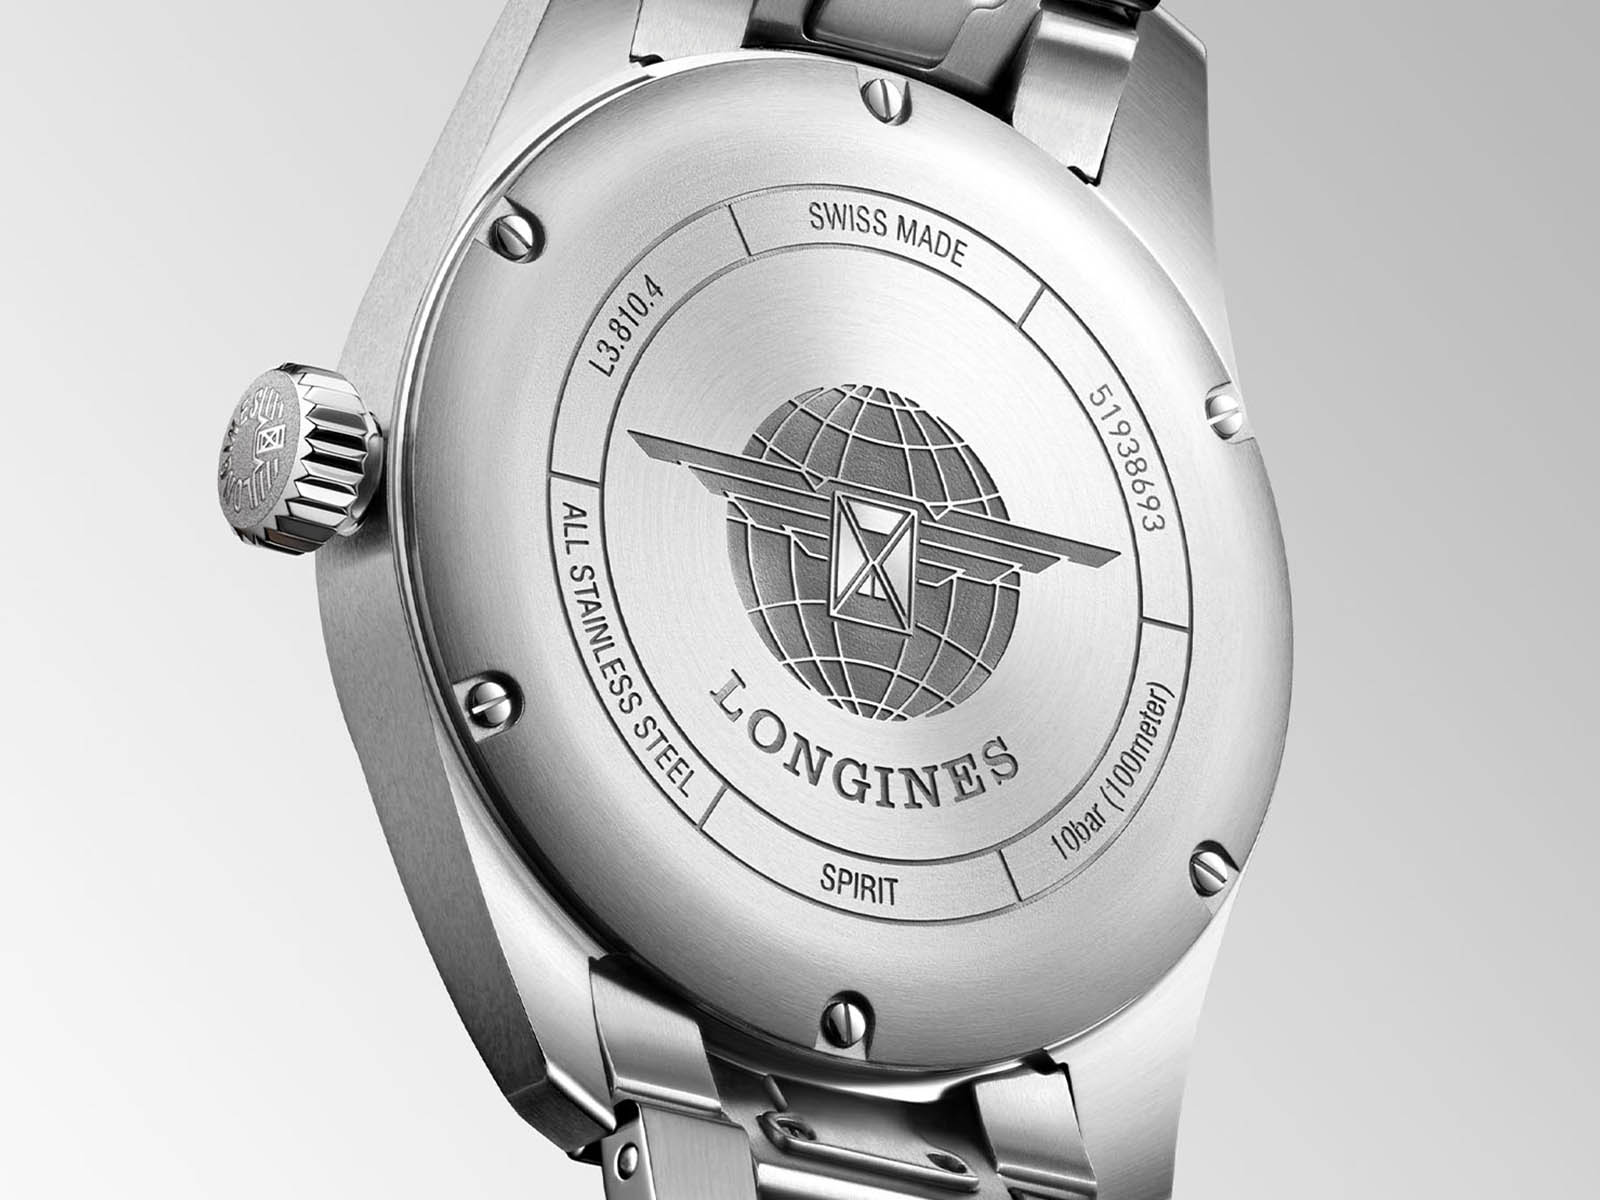 longines-spirit-time-and-date-green-6.jpg